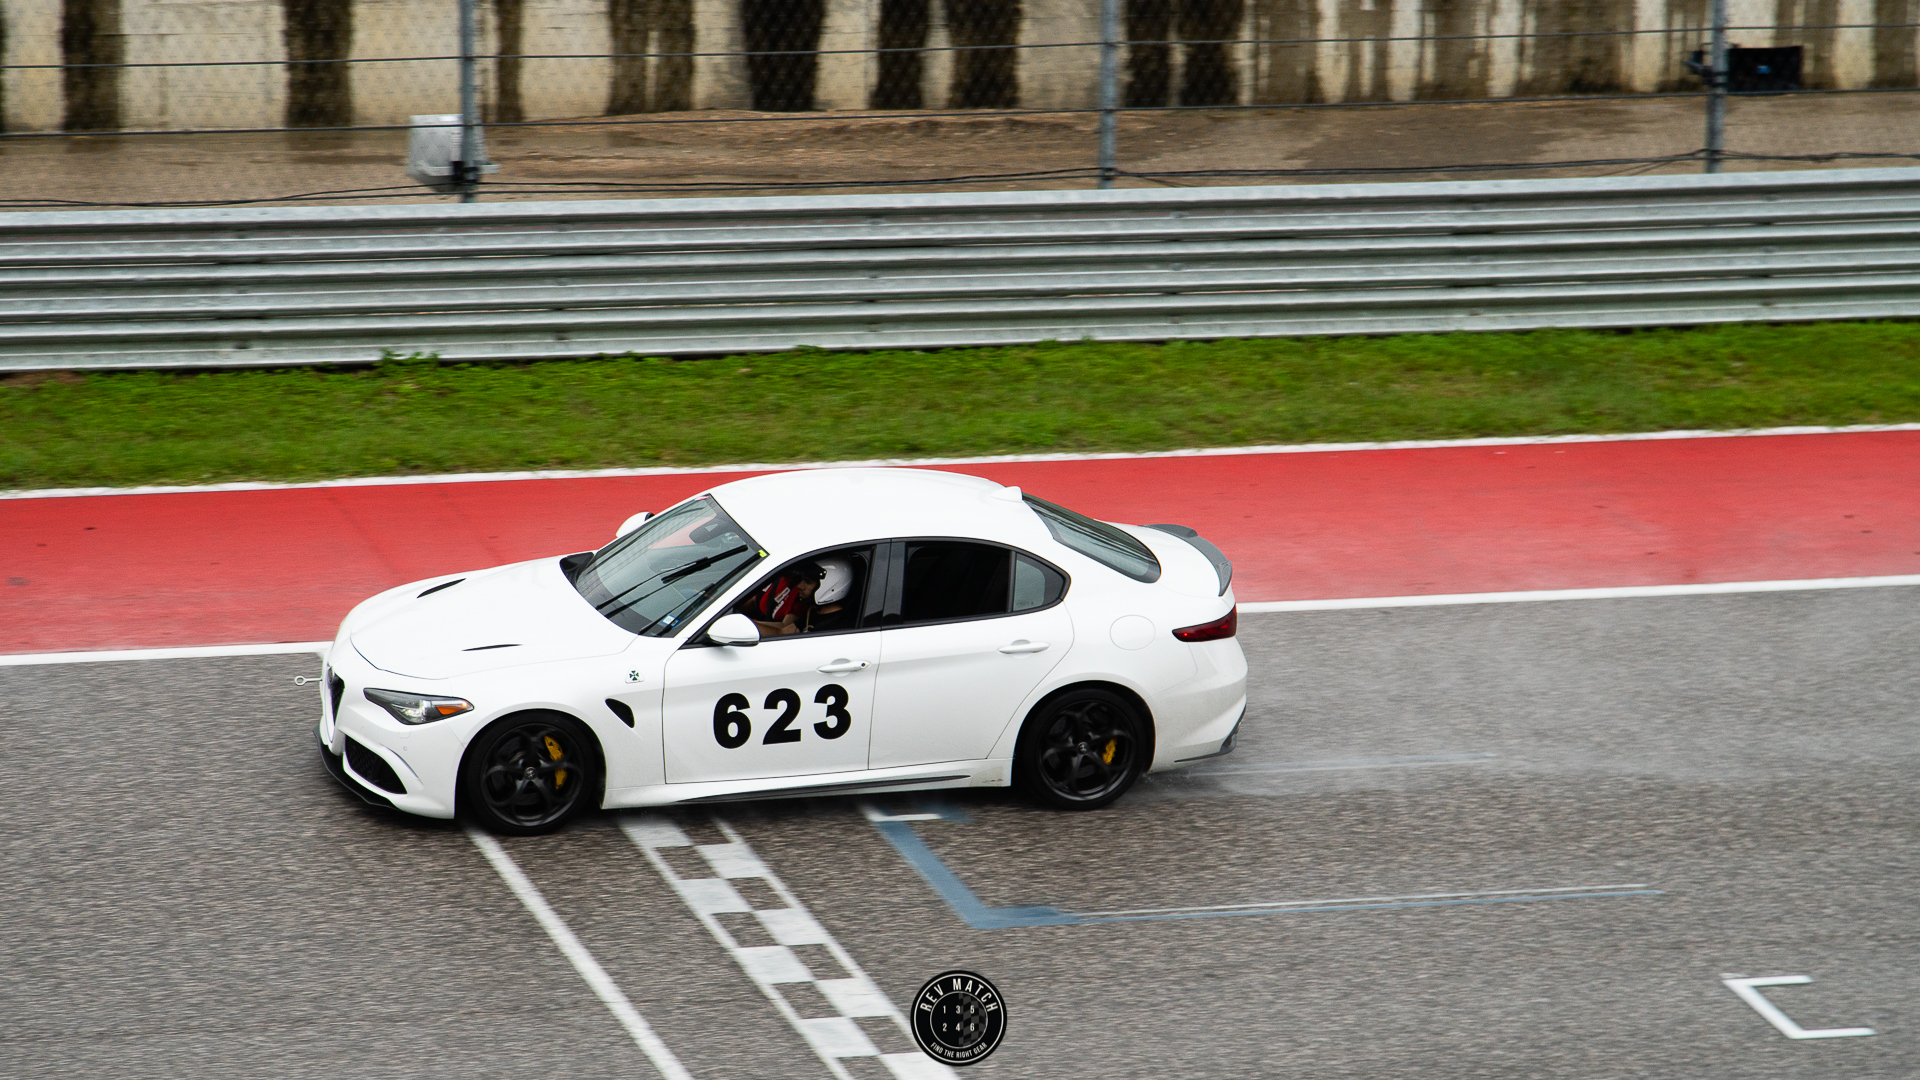 Edge Addict COTA May 2019 Rev Match Media-49.jpg